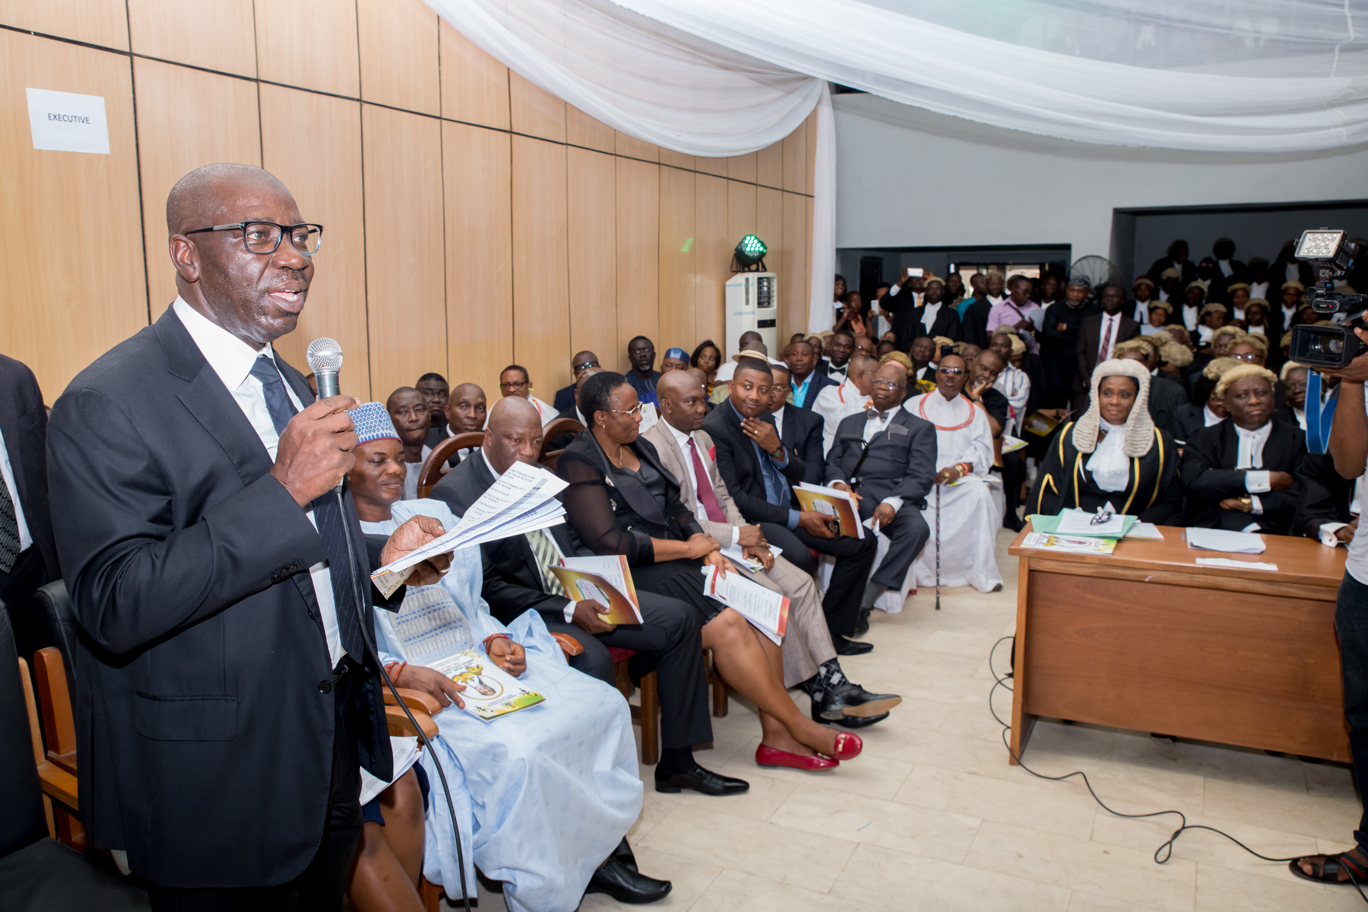 Valedictory Court Session for Justice Andrews Obaseki holds in Benin City